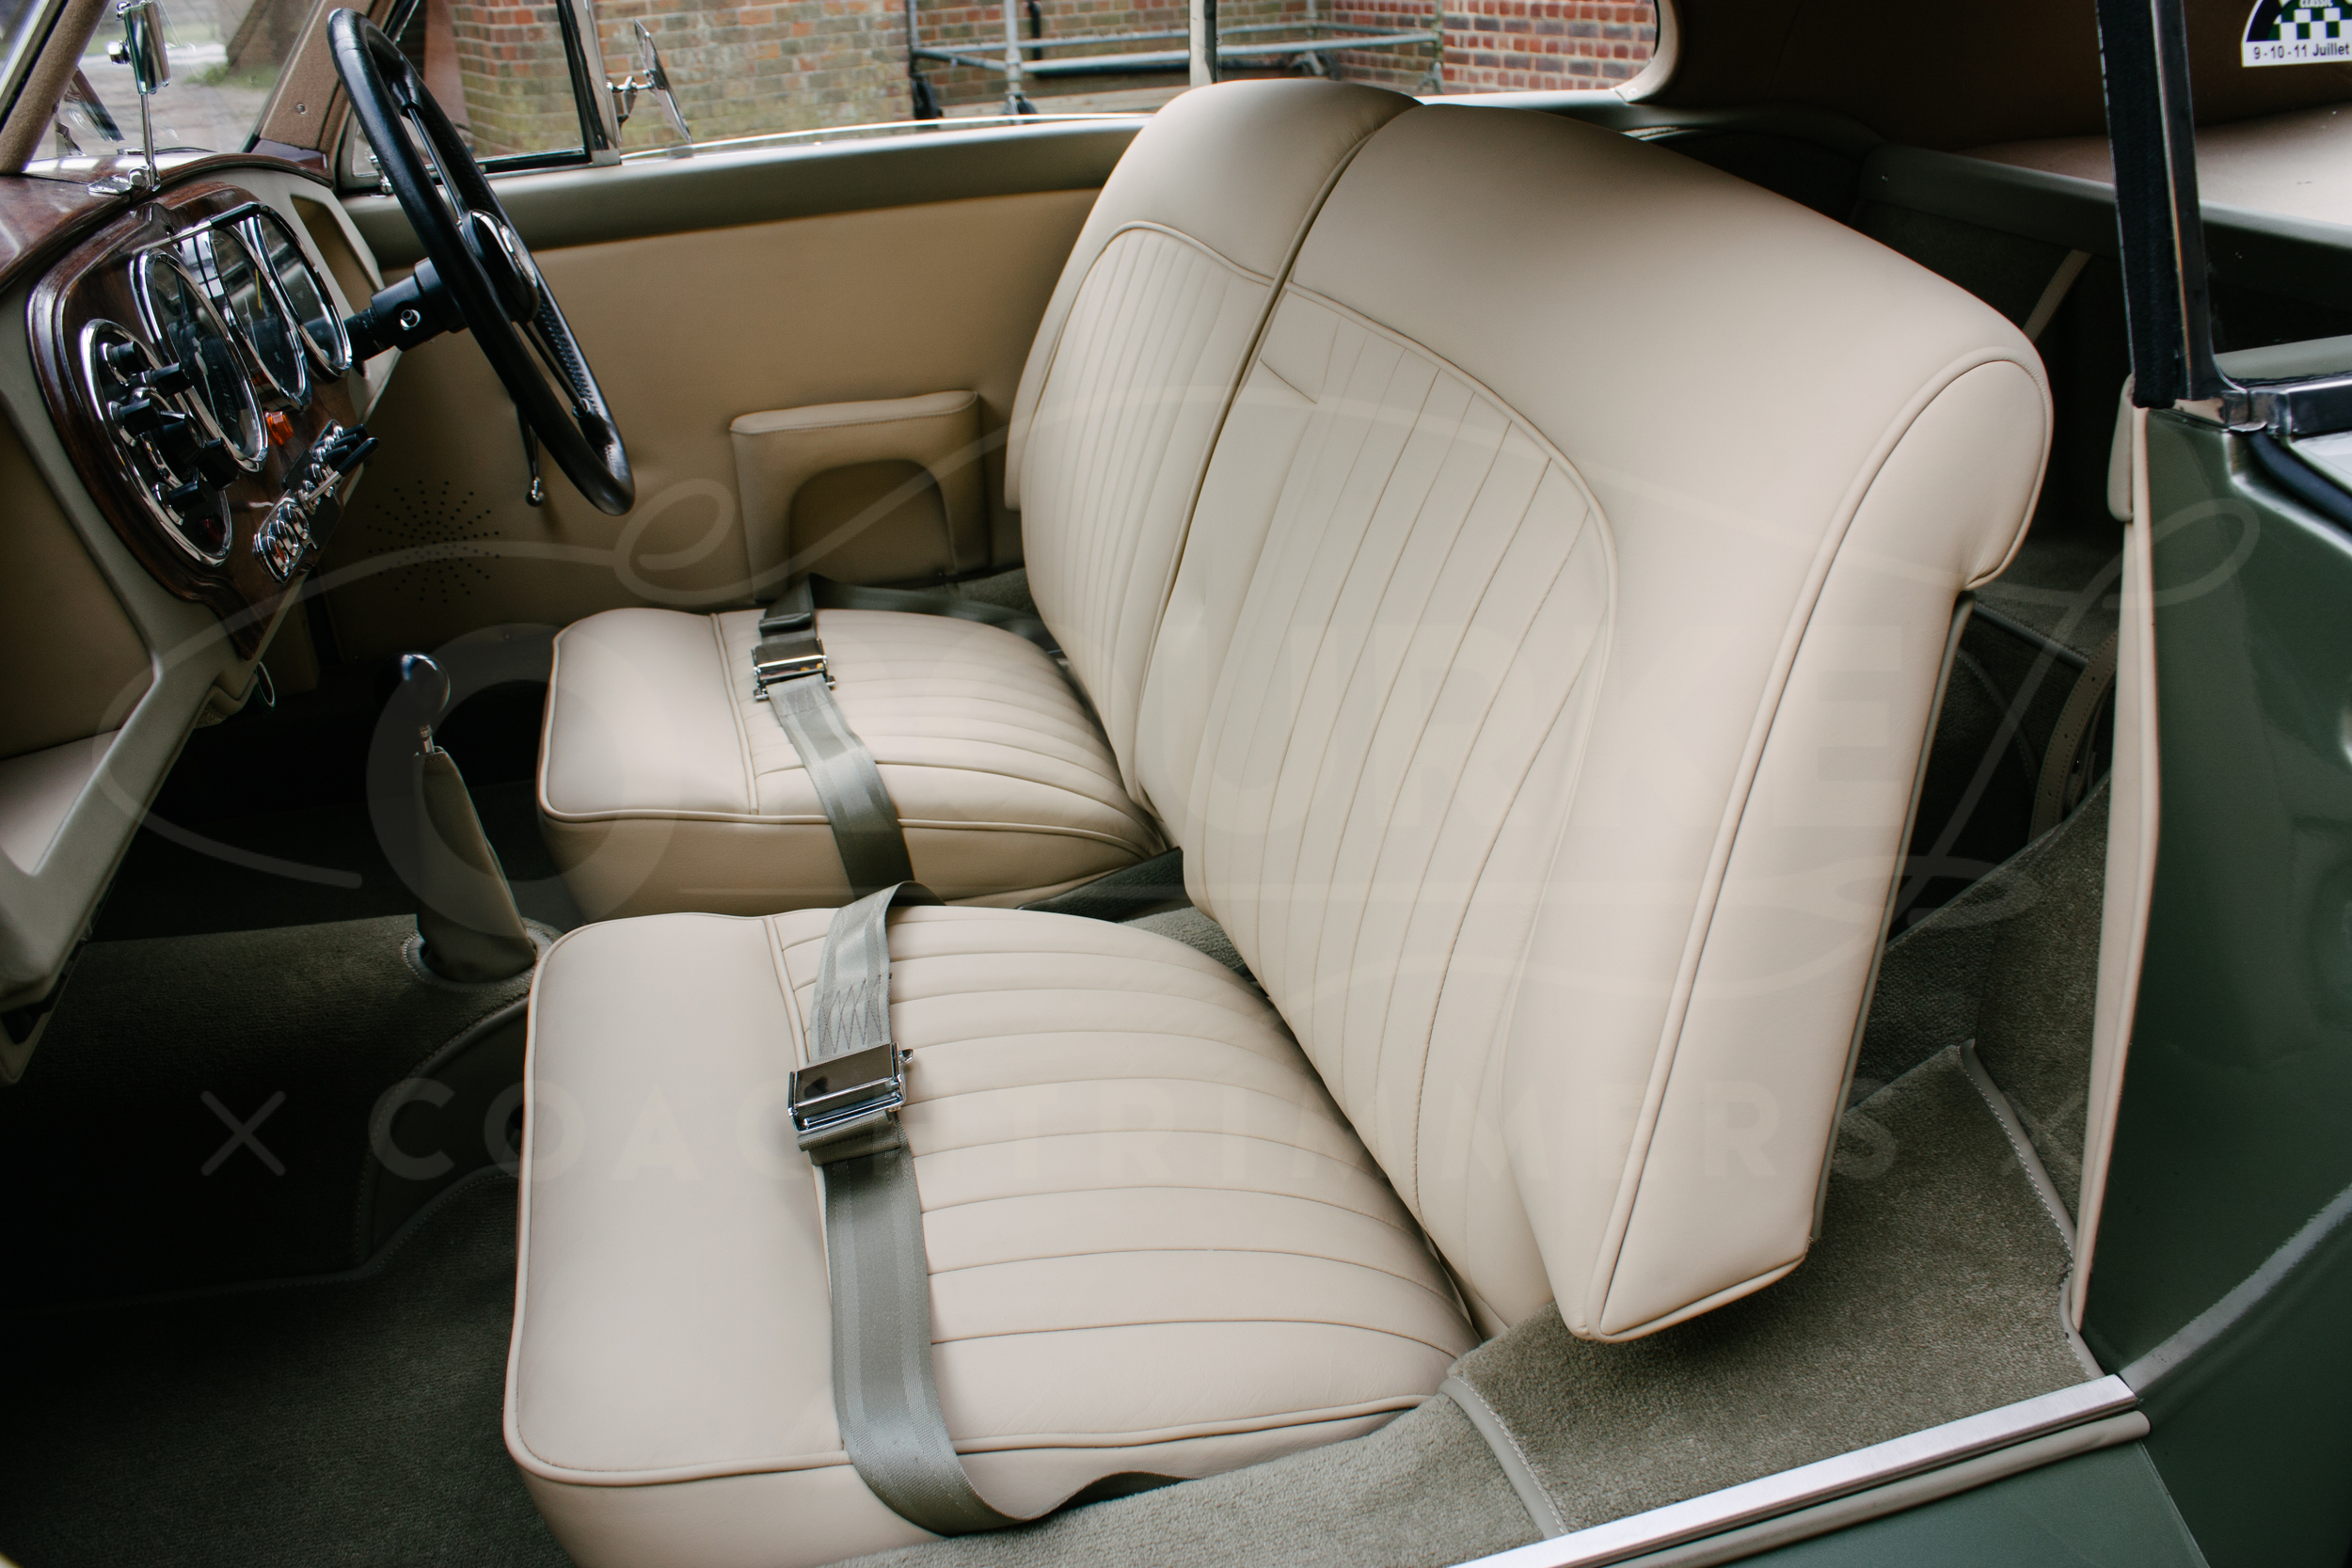 o-rourke-coachtrimmers-aston-martin-db2.jpg